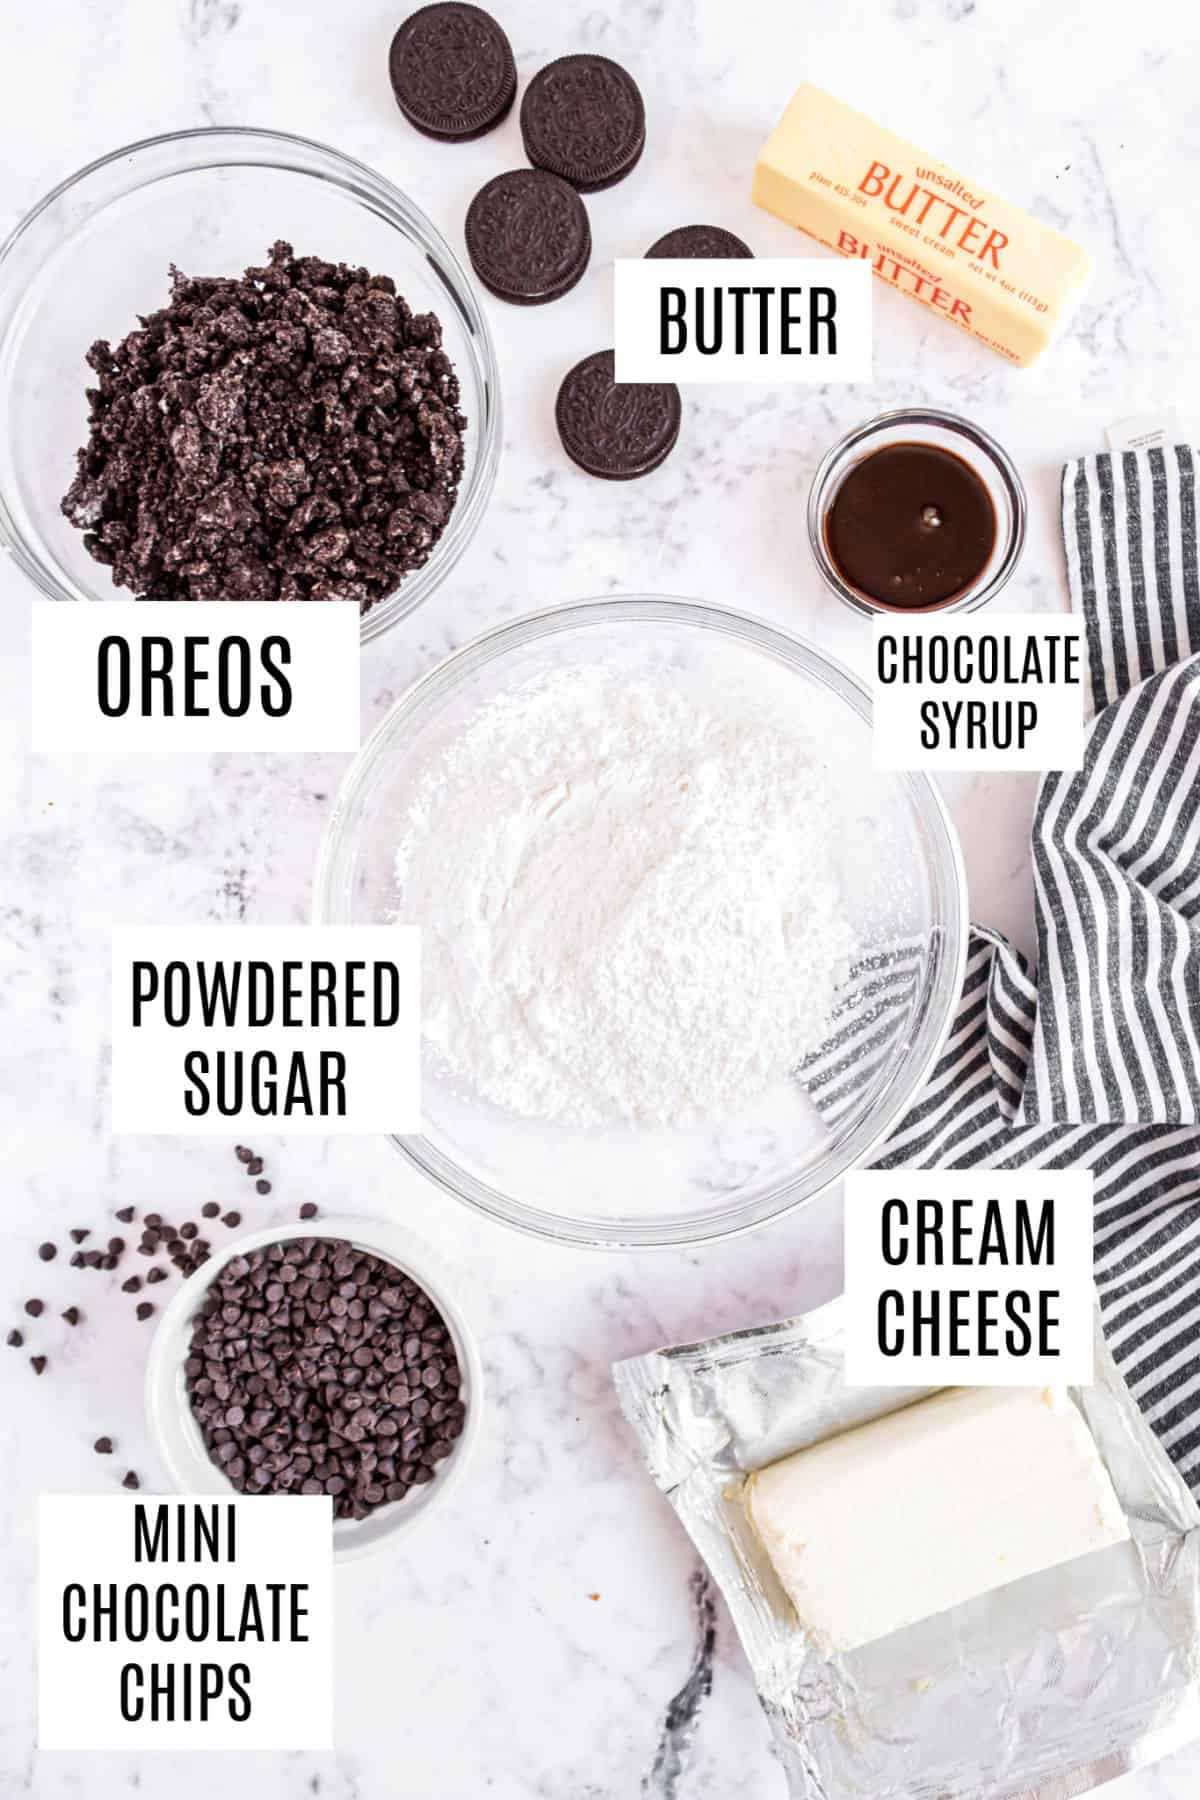 Ingredients needed for cookies and cream cheese ball recipe.